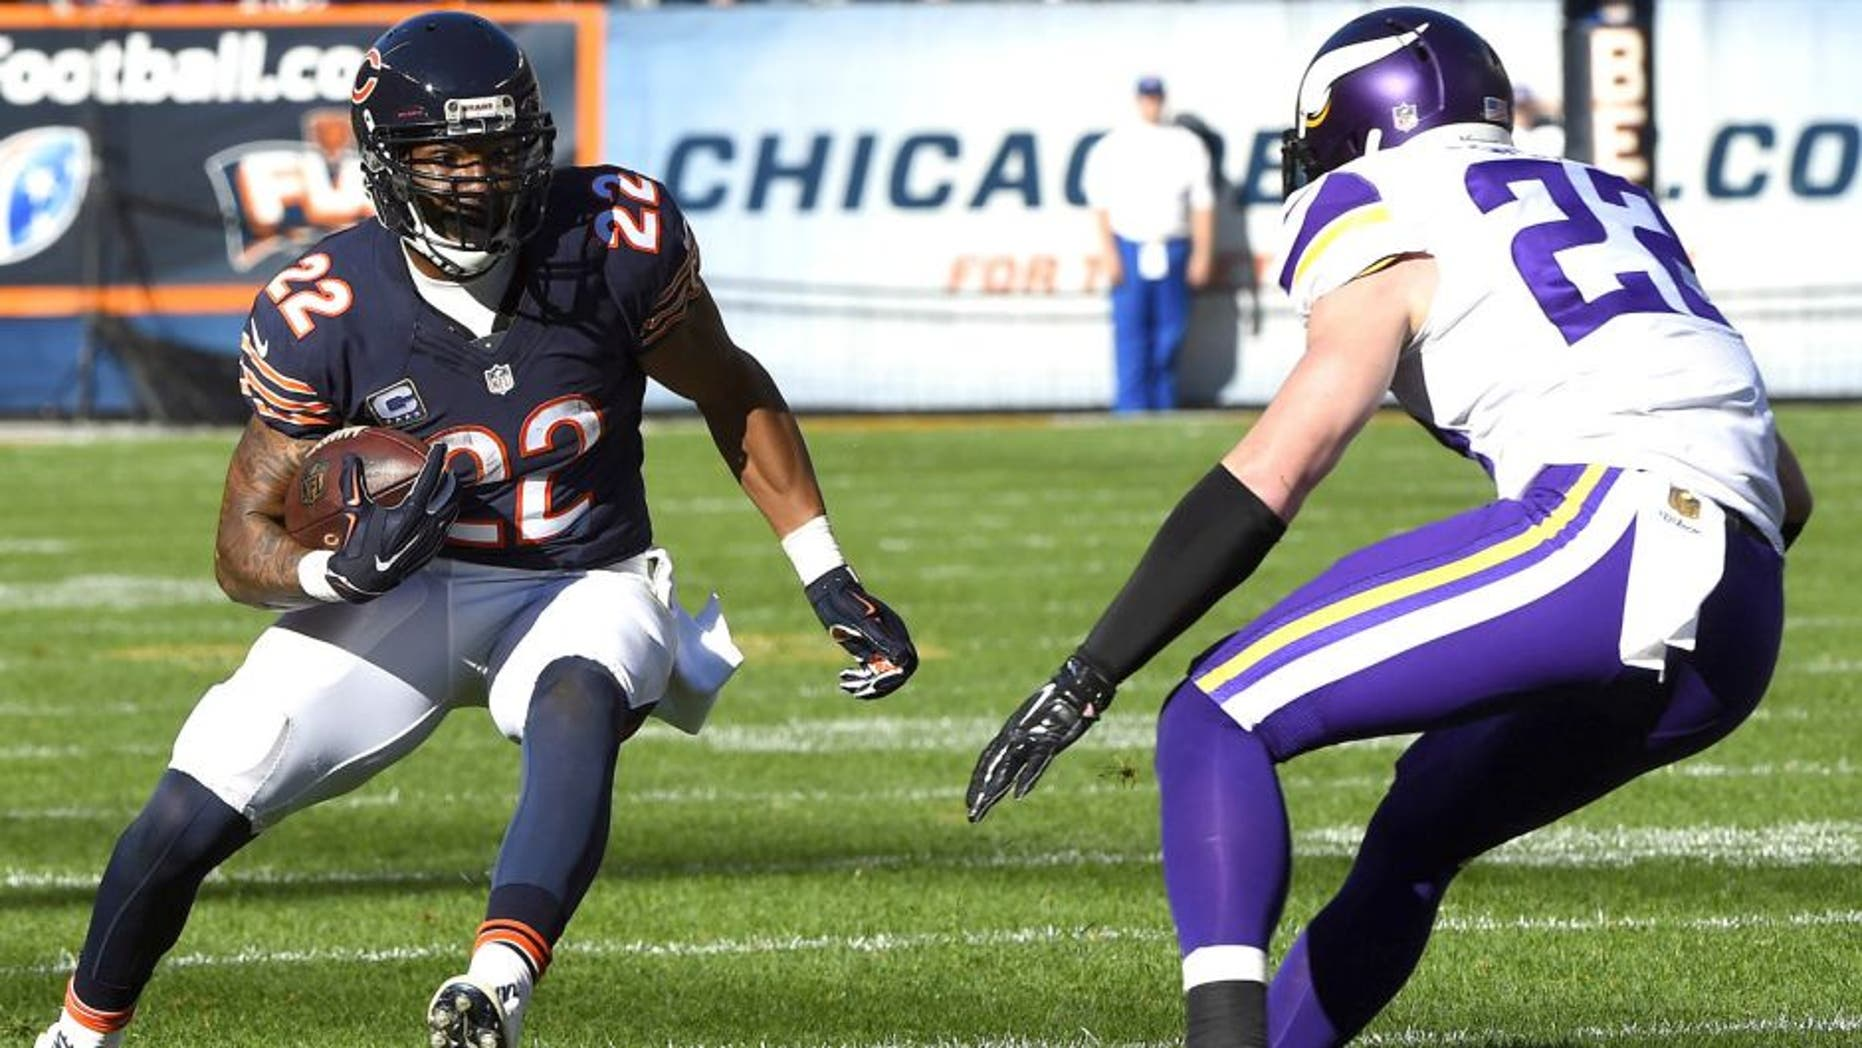 Nov 1, 2015; Chicago, IL, USA; Chicago Bears running back Matt Forte (22) carries the ball as Minnesota Vikings free safety Harrison Smith (22) defends during the second half at Soldier Field. Mandatory Credit: Mike DiNovo-USA TODAY Sports